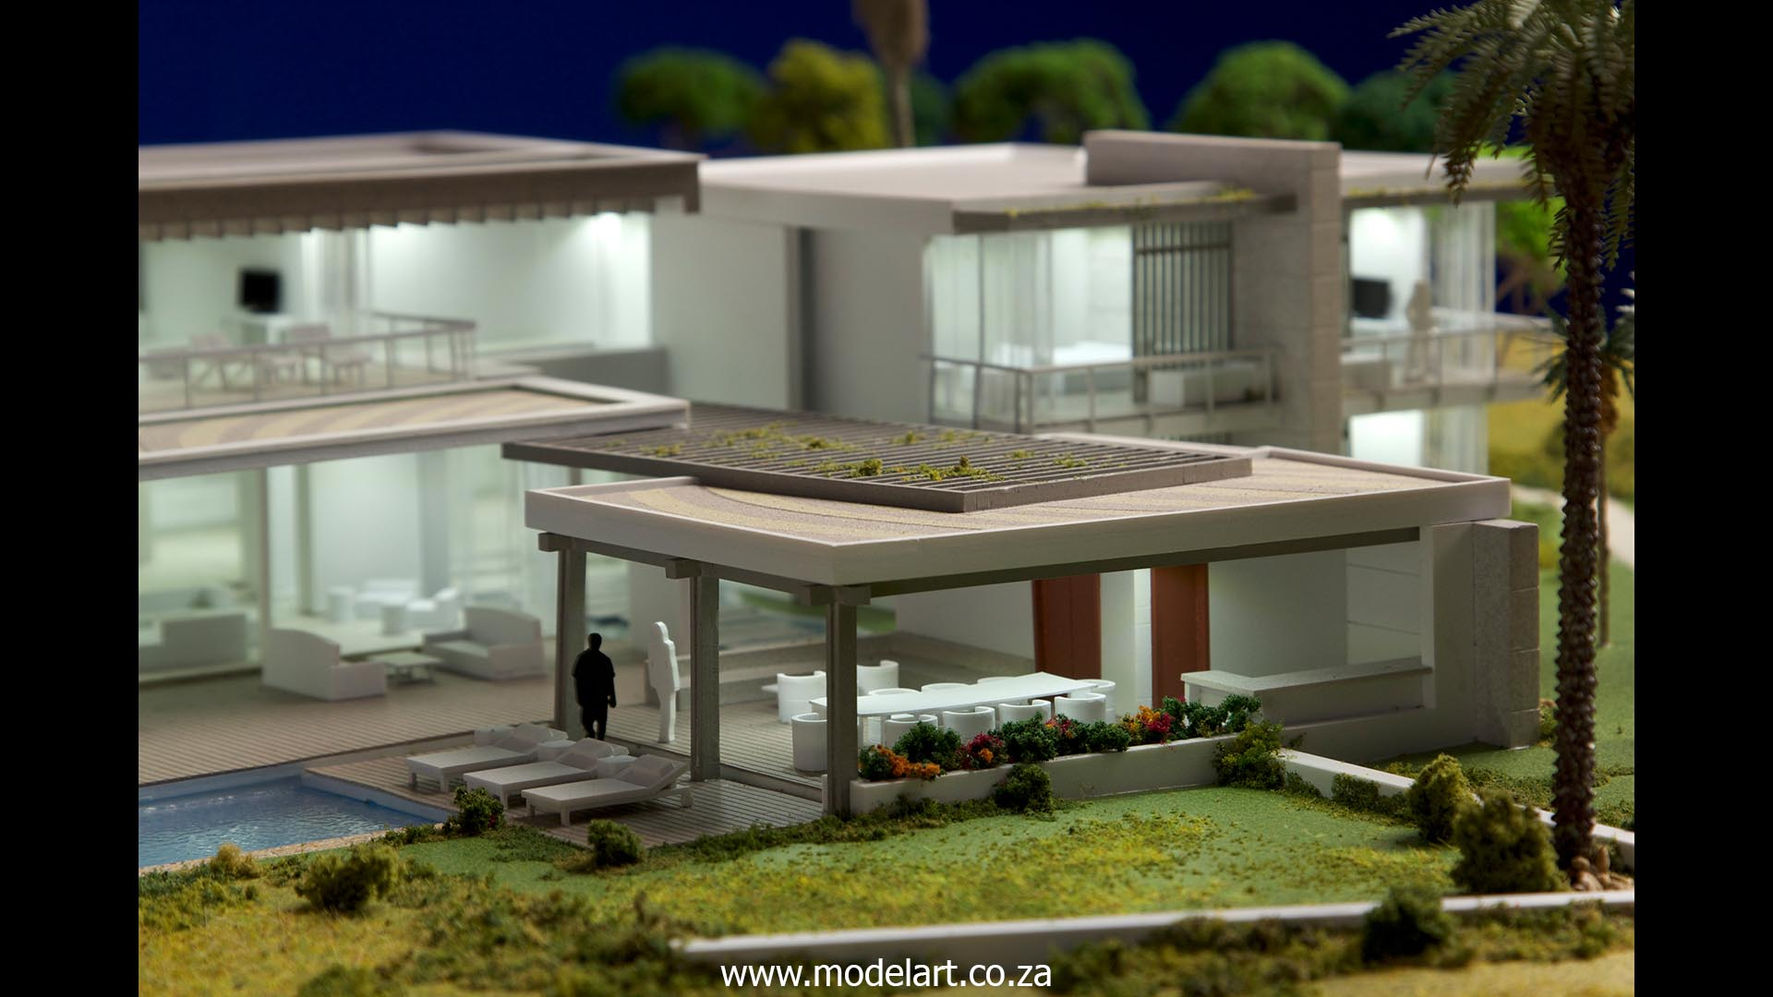 Modelart-Architectural-Scale-Model-Resid